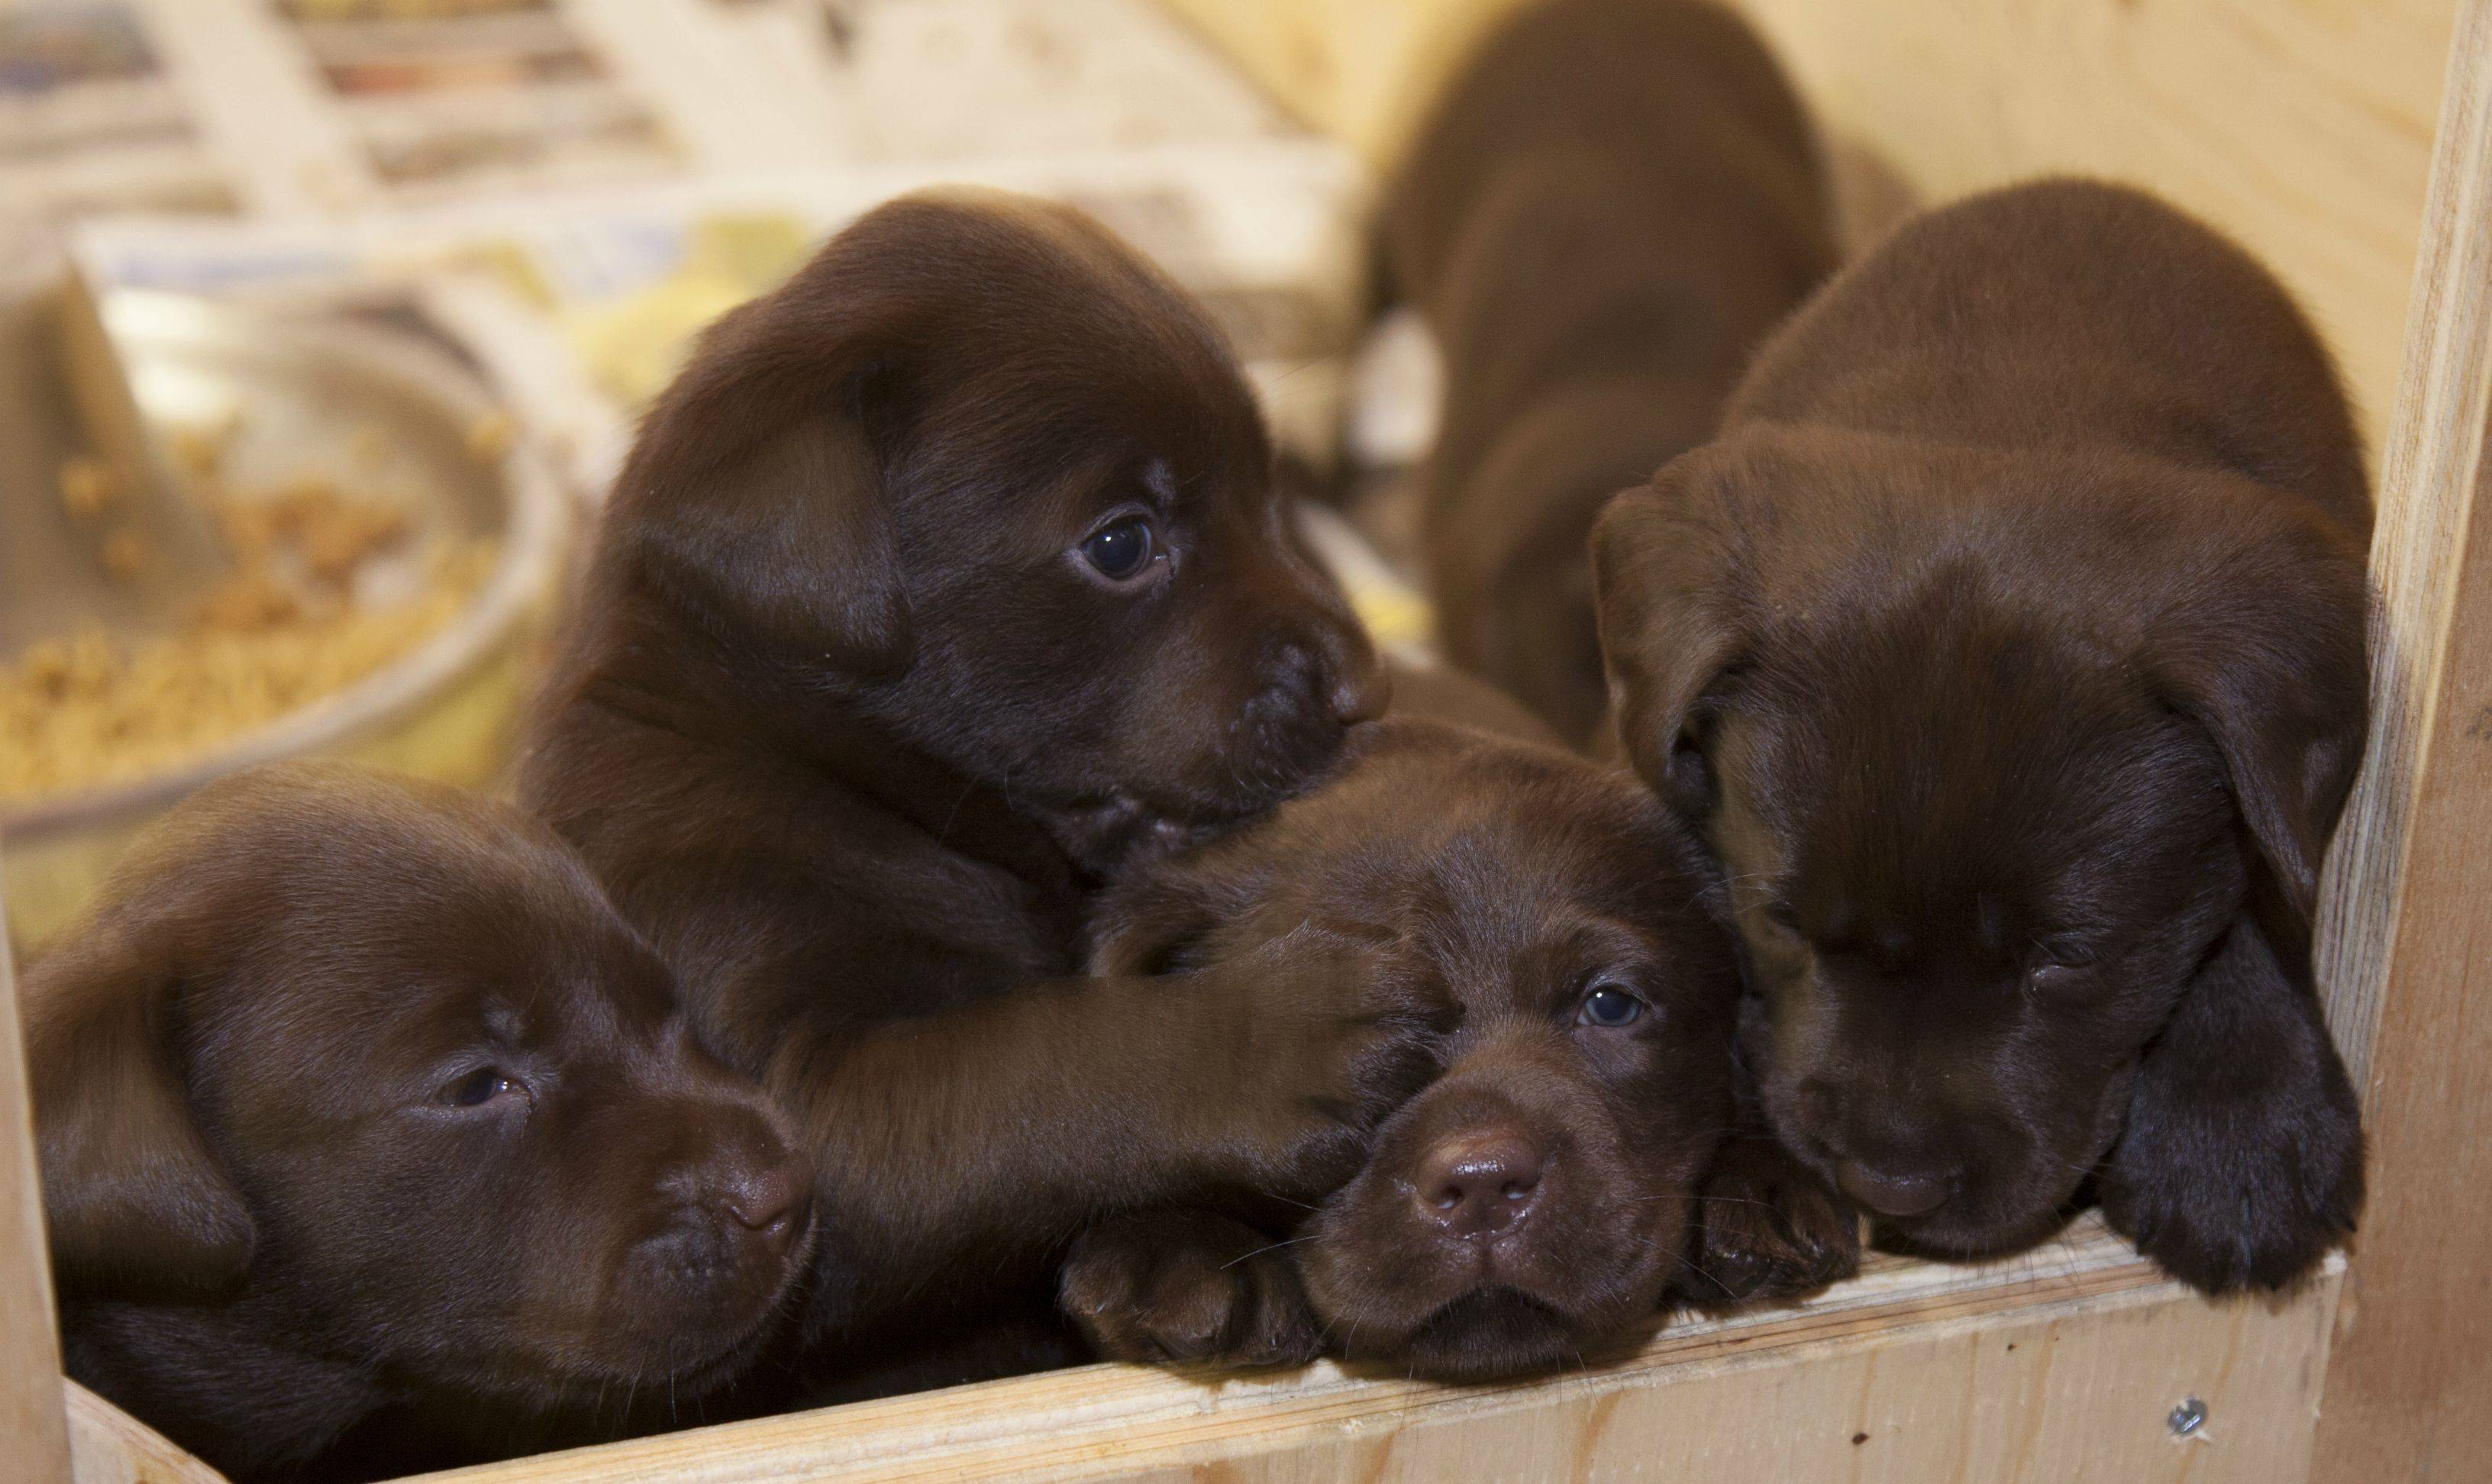 Chocolate labrador retriever puppies – Dogs in our life photo blog